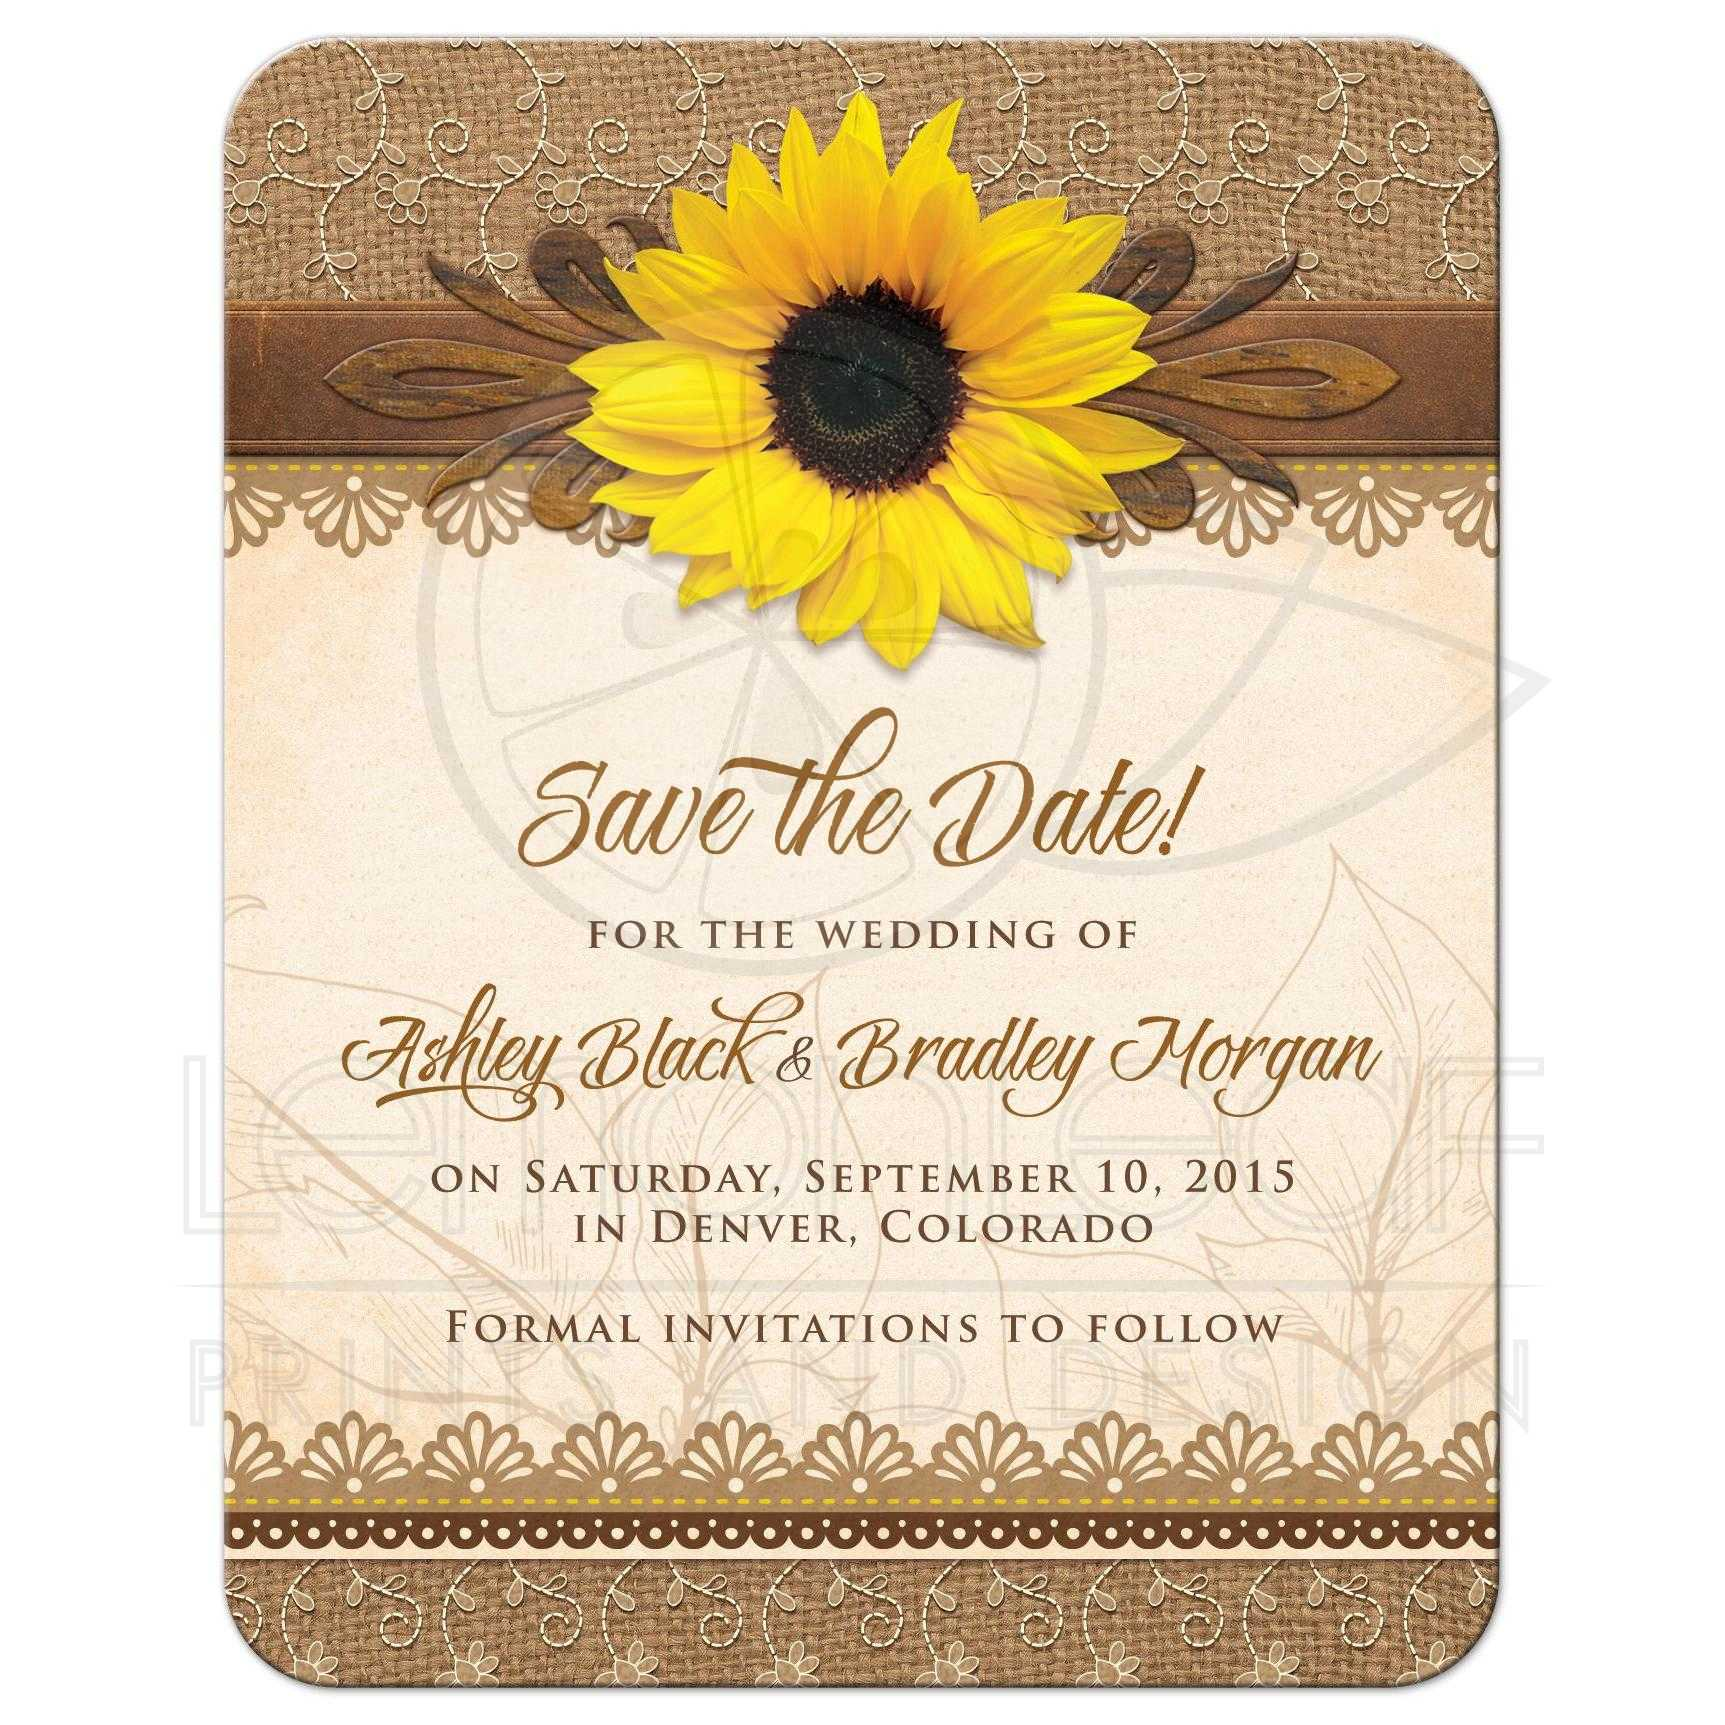 Wedding Save The Date Rustic Sunflower Burlap Lace Wood